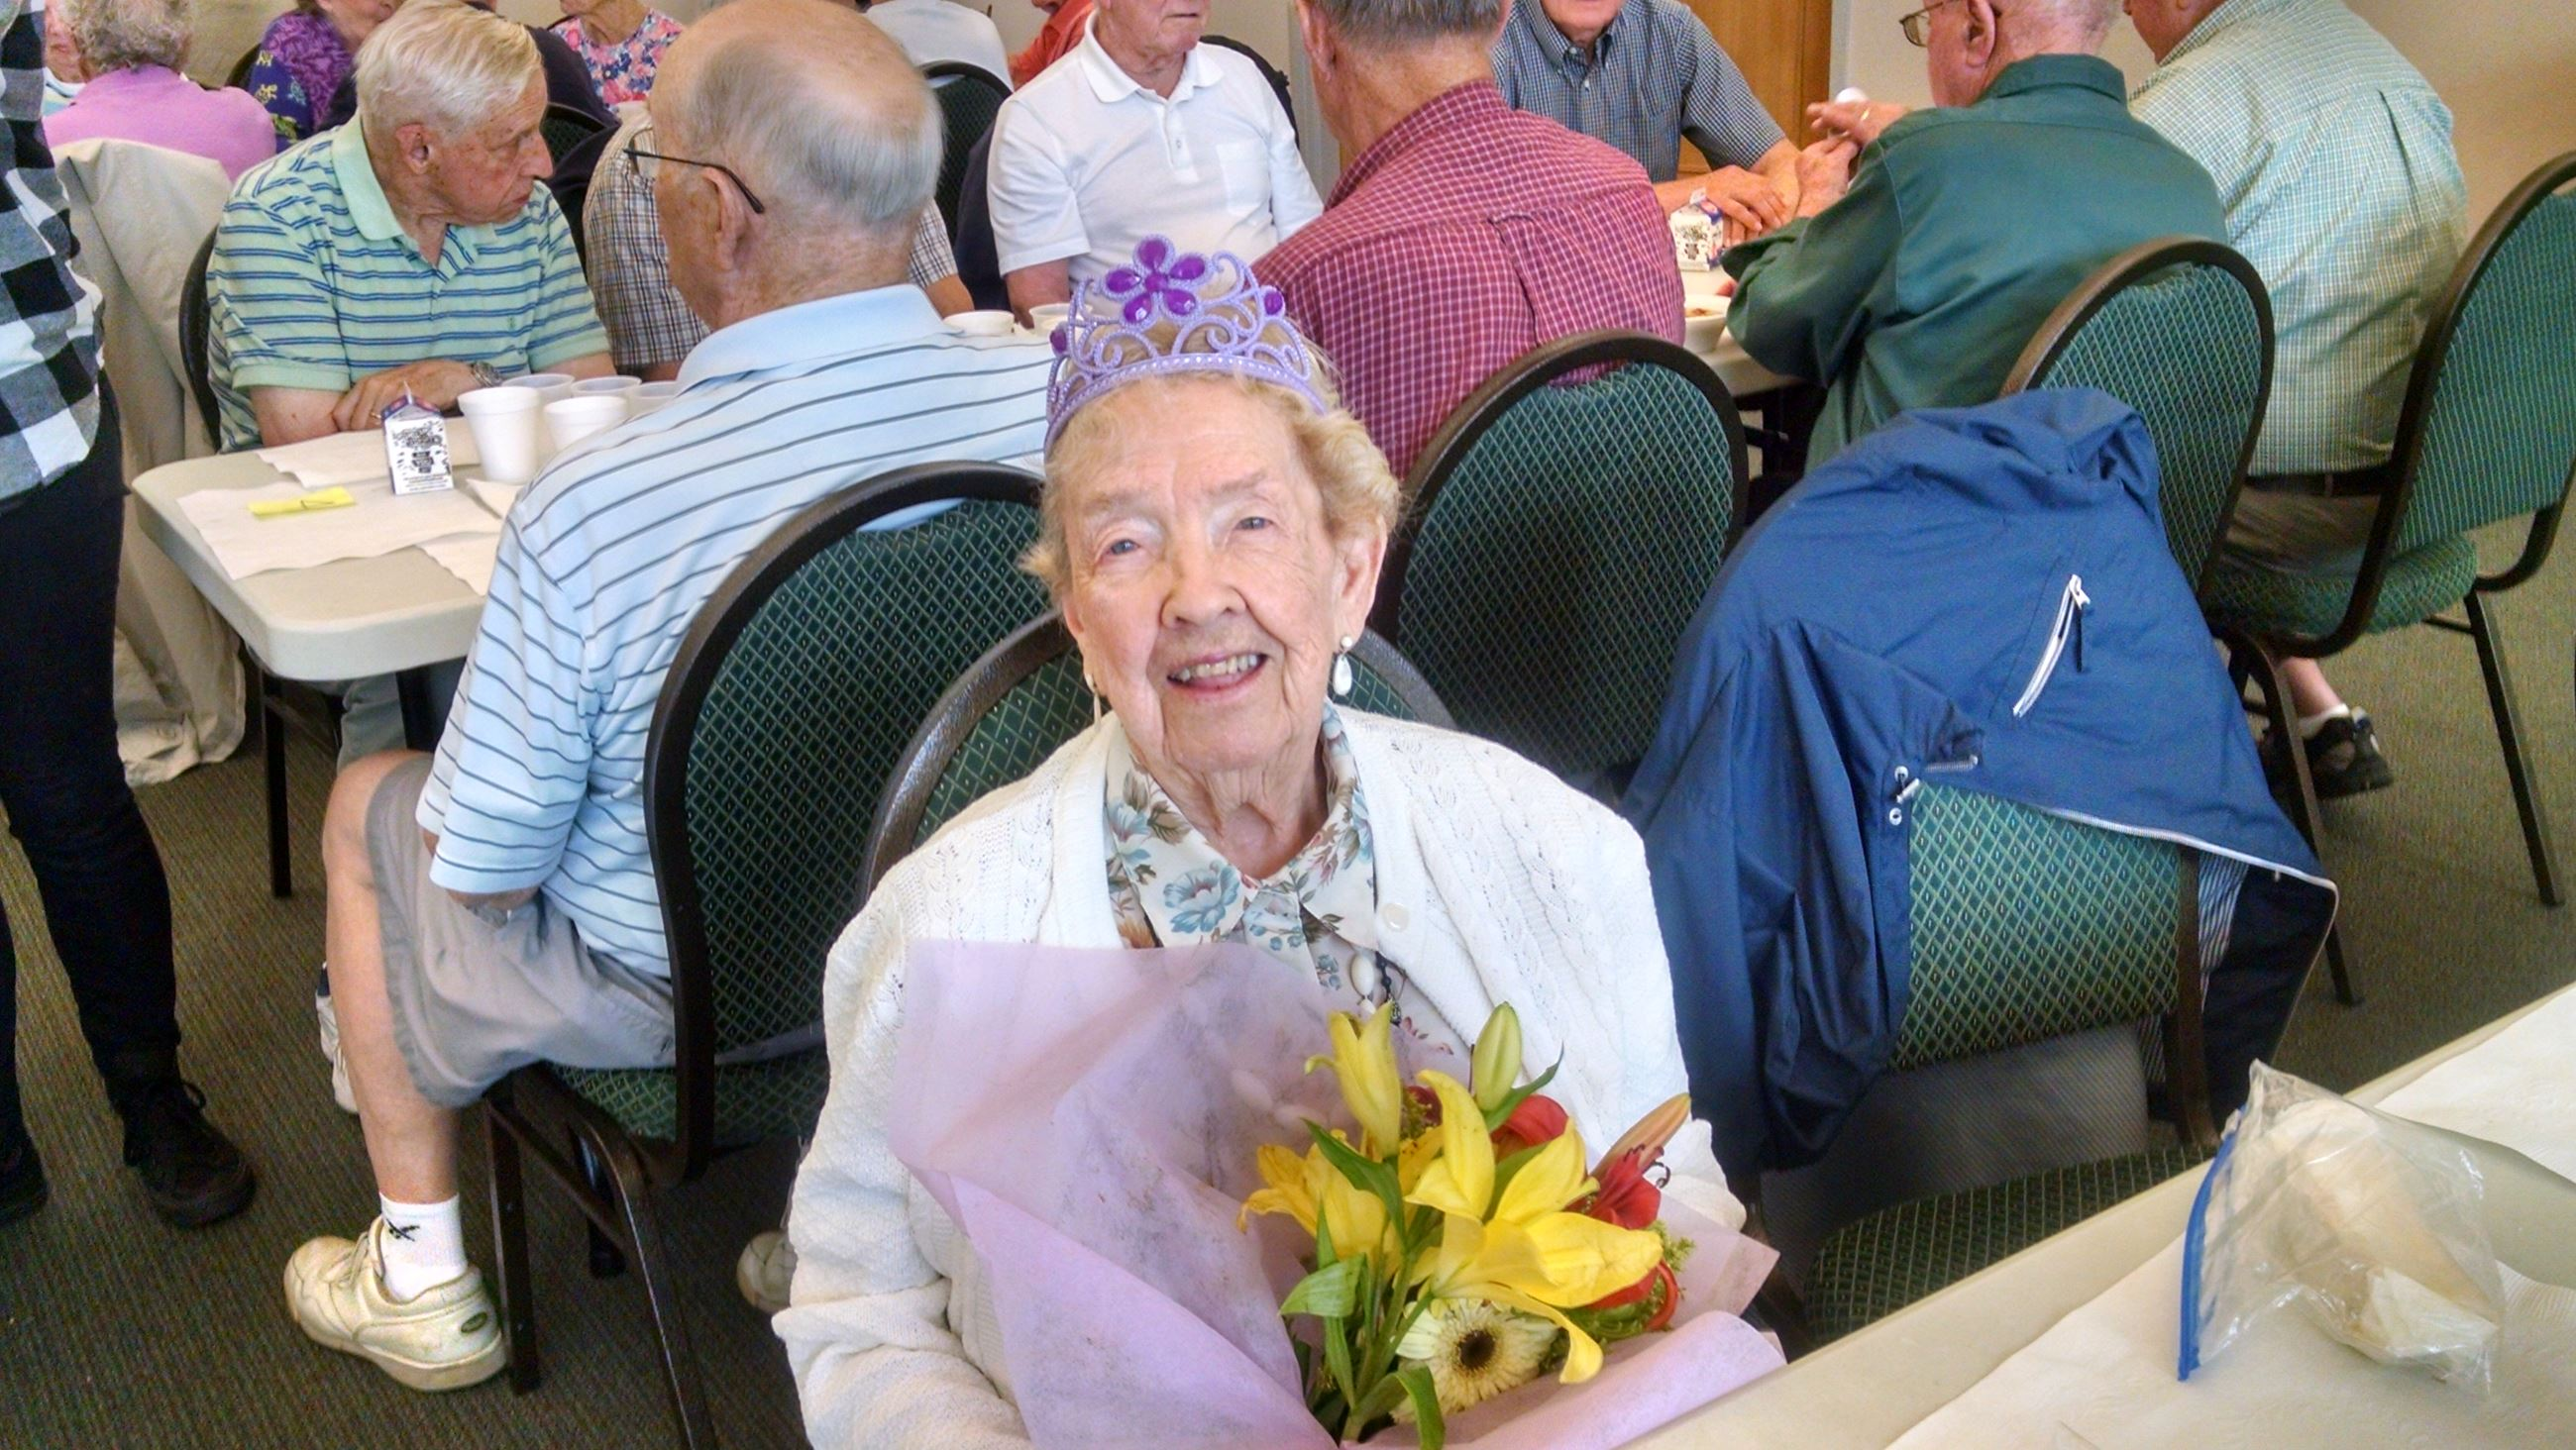 A woman wearing a purple tiara celebrates her 100th birthday at the COA Wednesday Lunch.